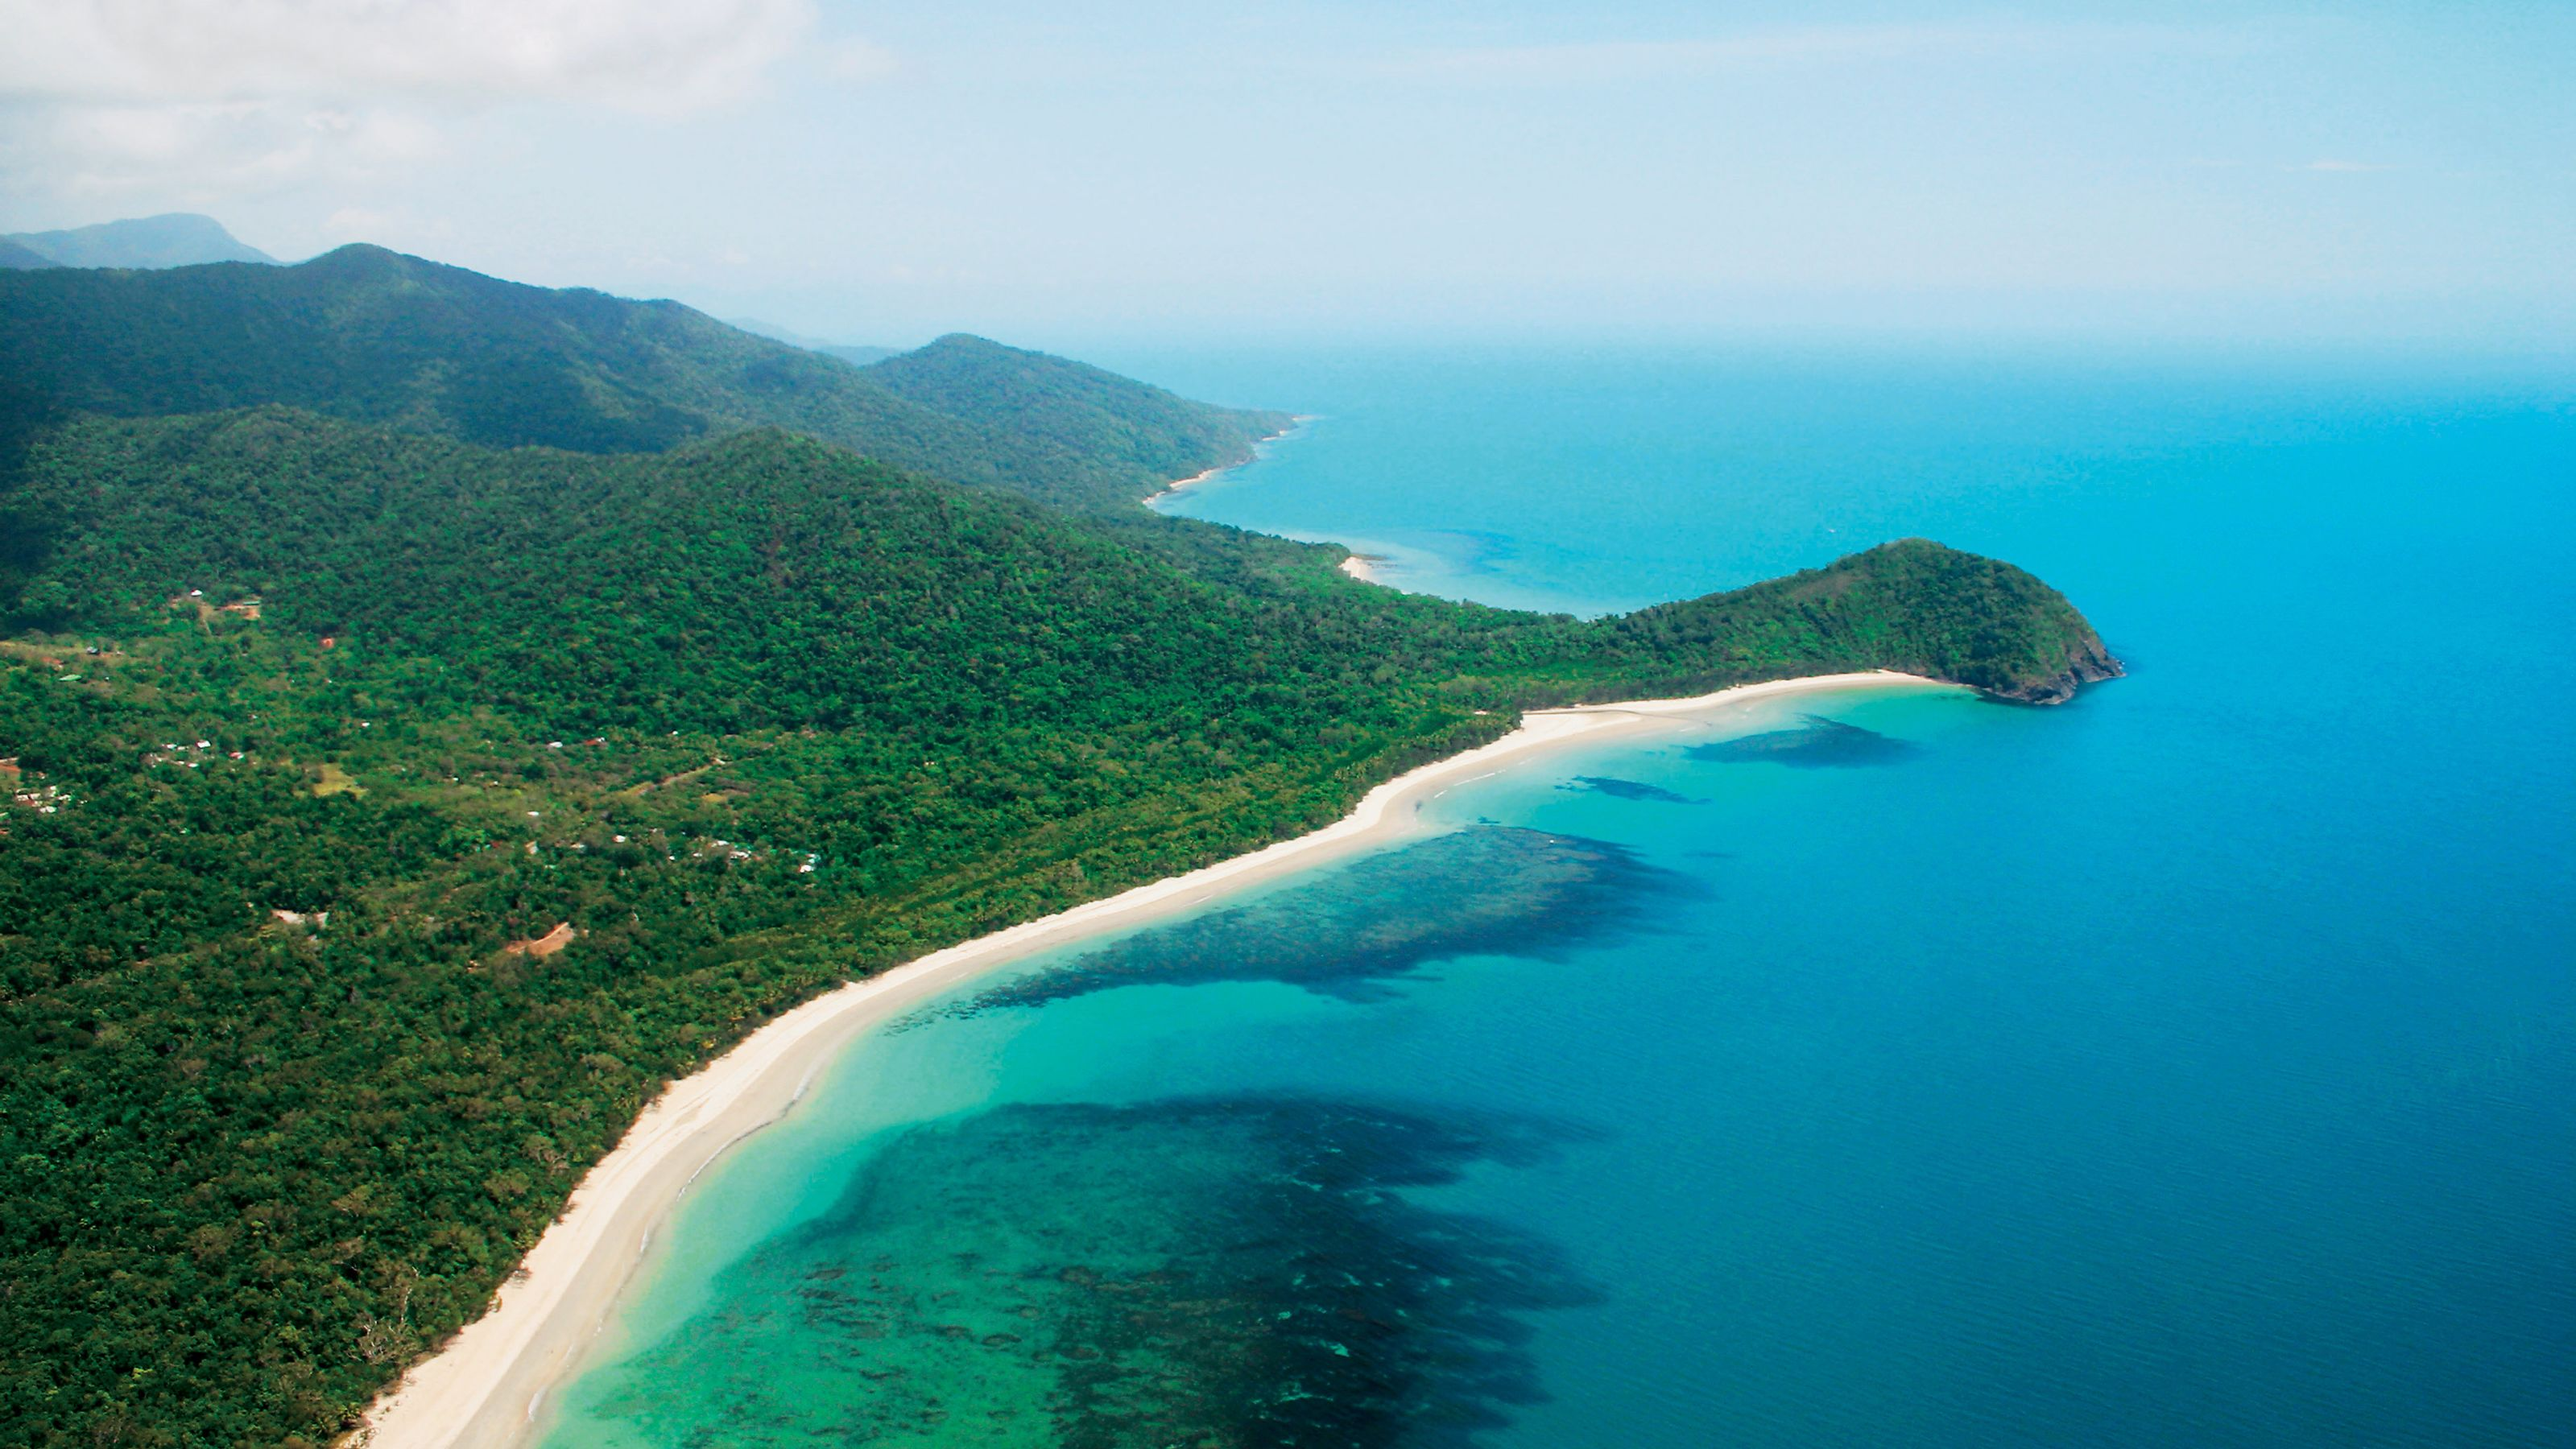 ariel veiw of green forest and sandy coast line of blue water.